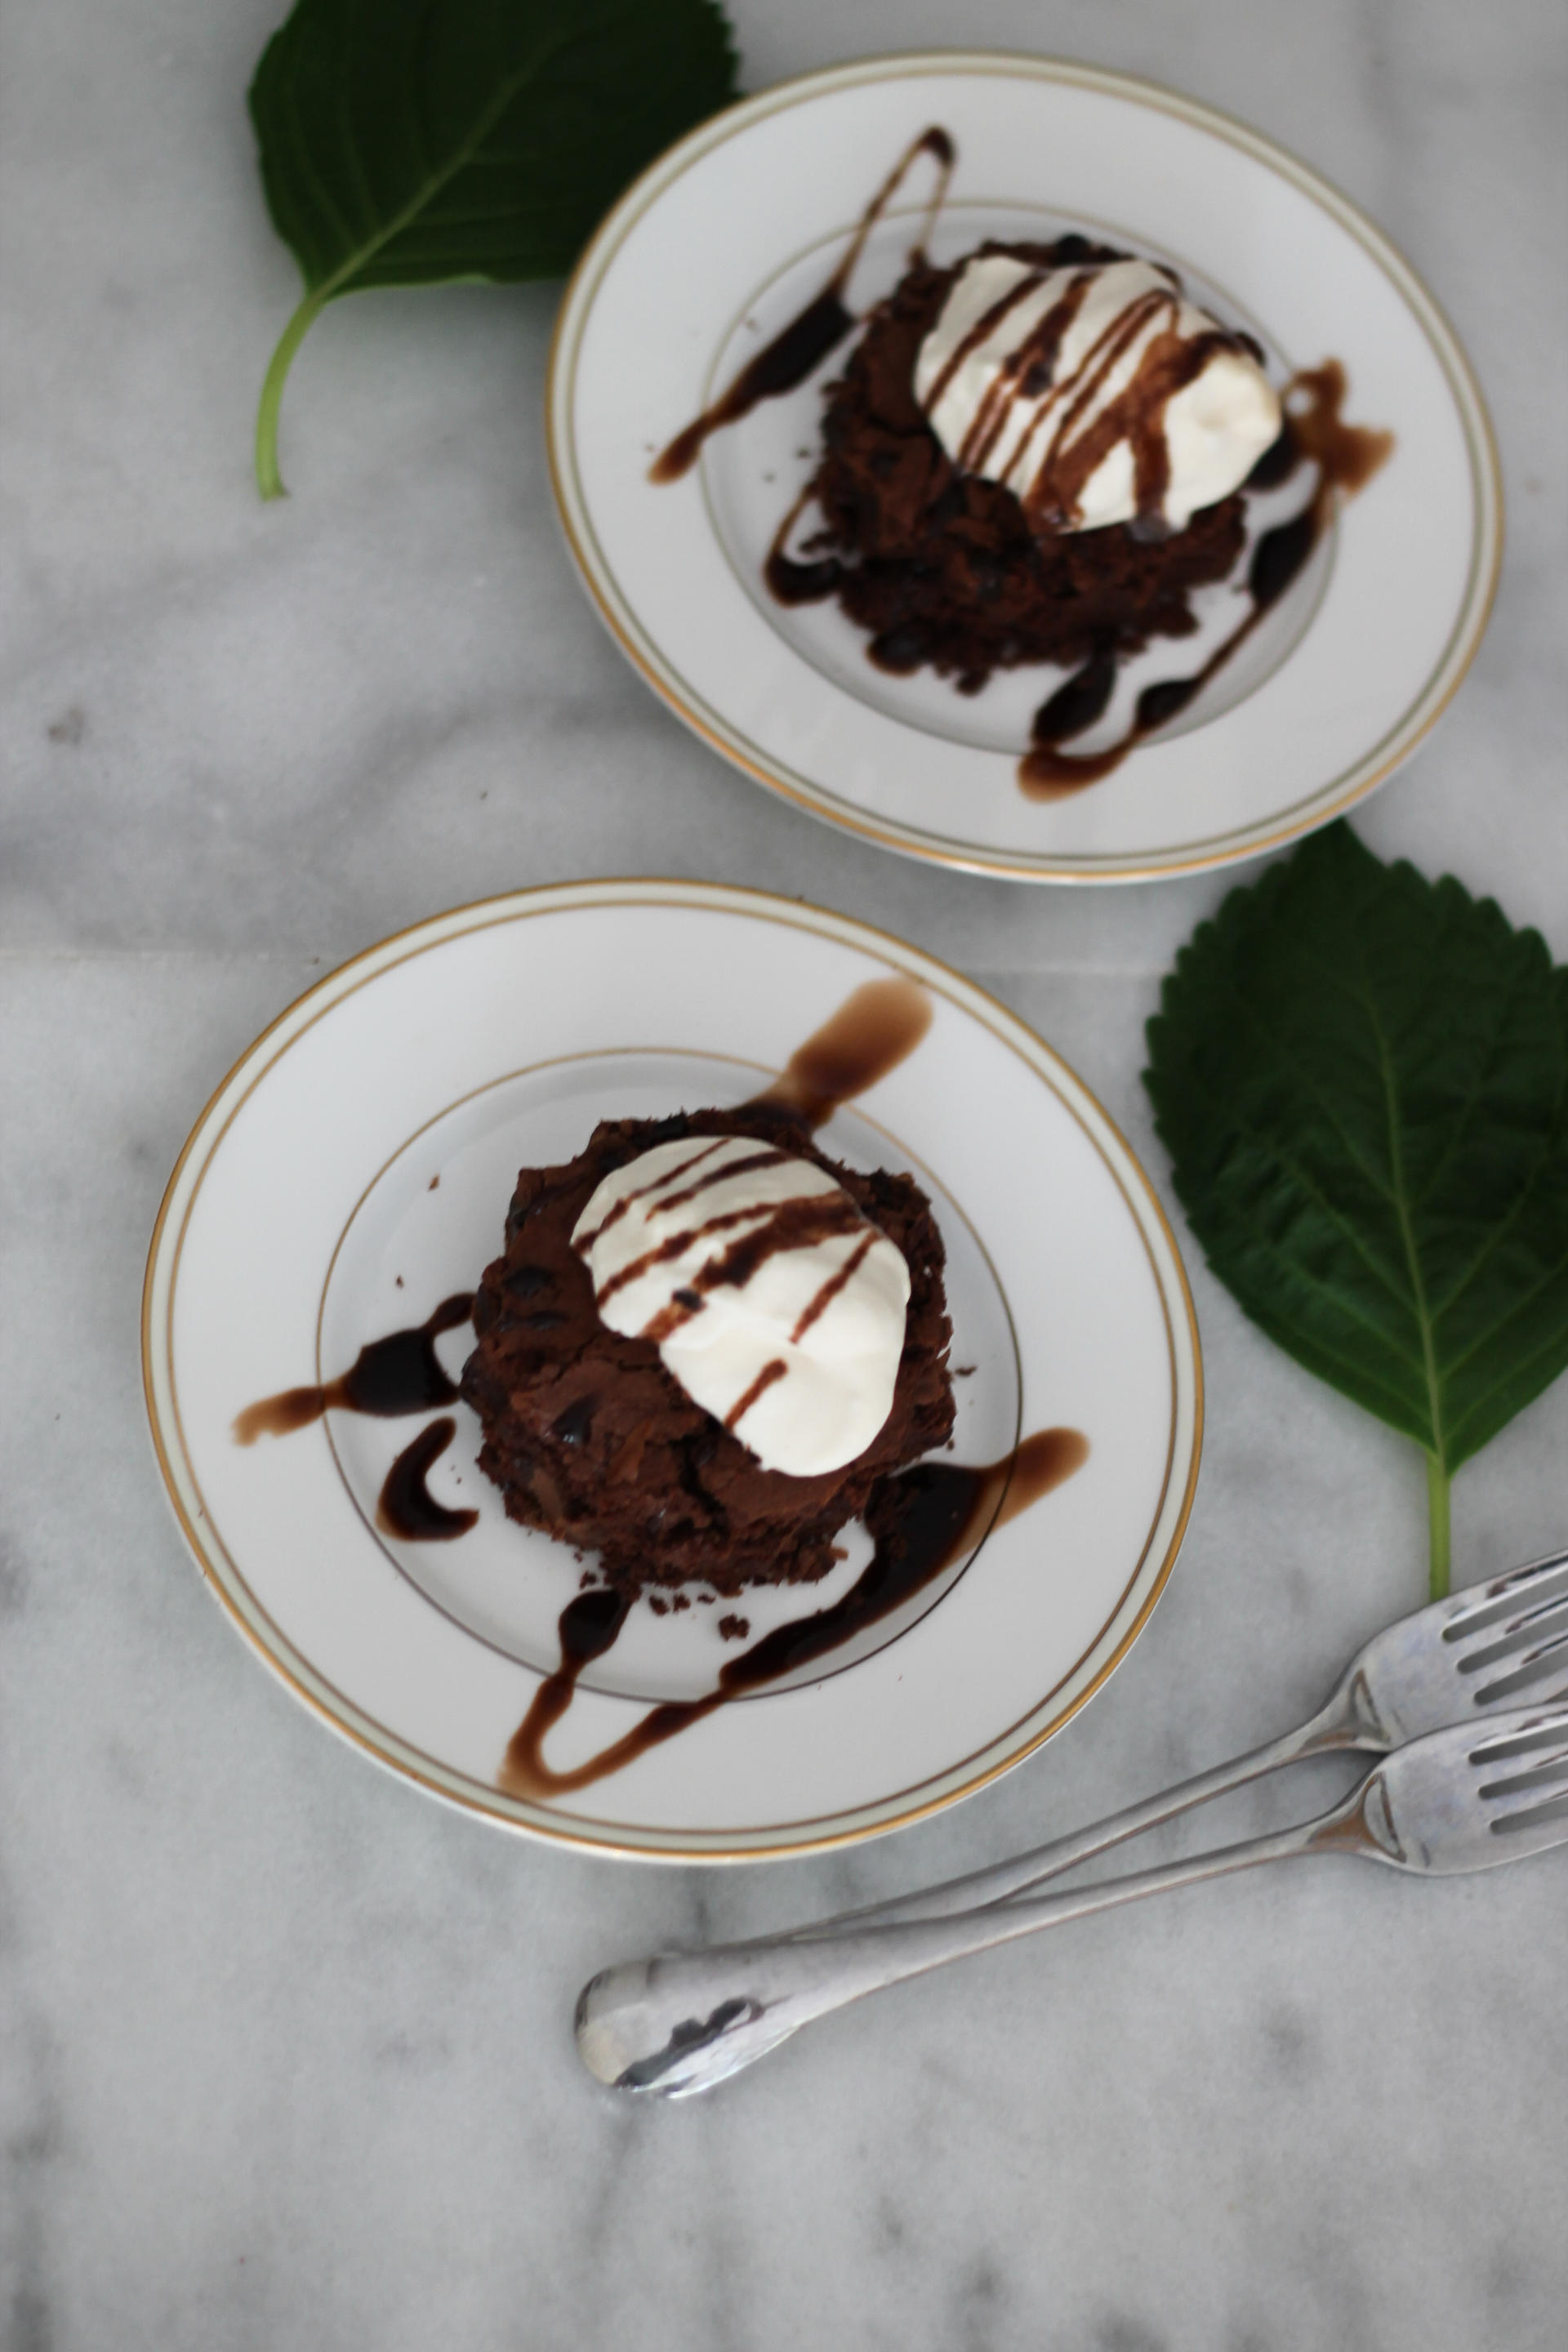 The Barefoot Contessa's Brownie Tart With Salted Caramel Whipped Cream